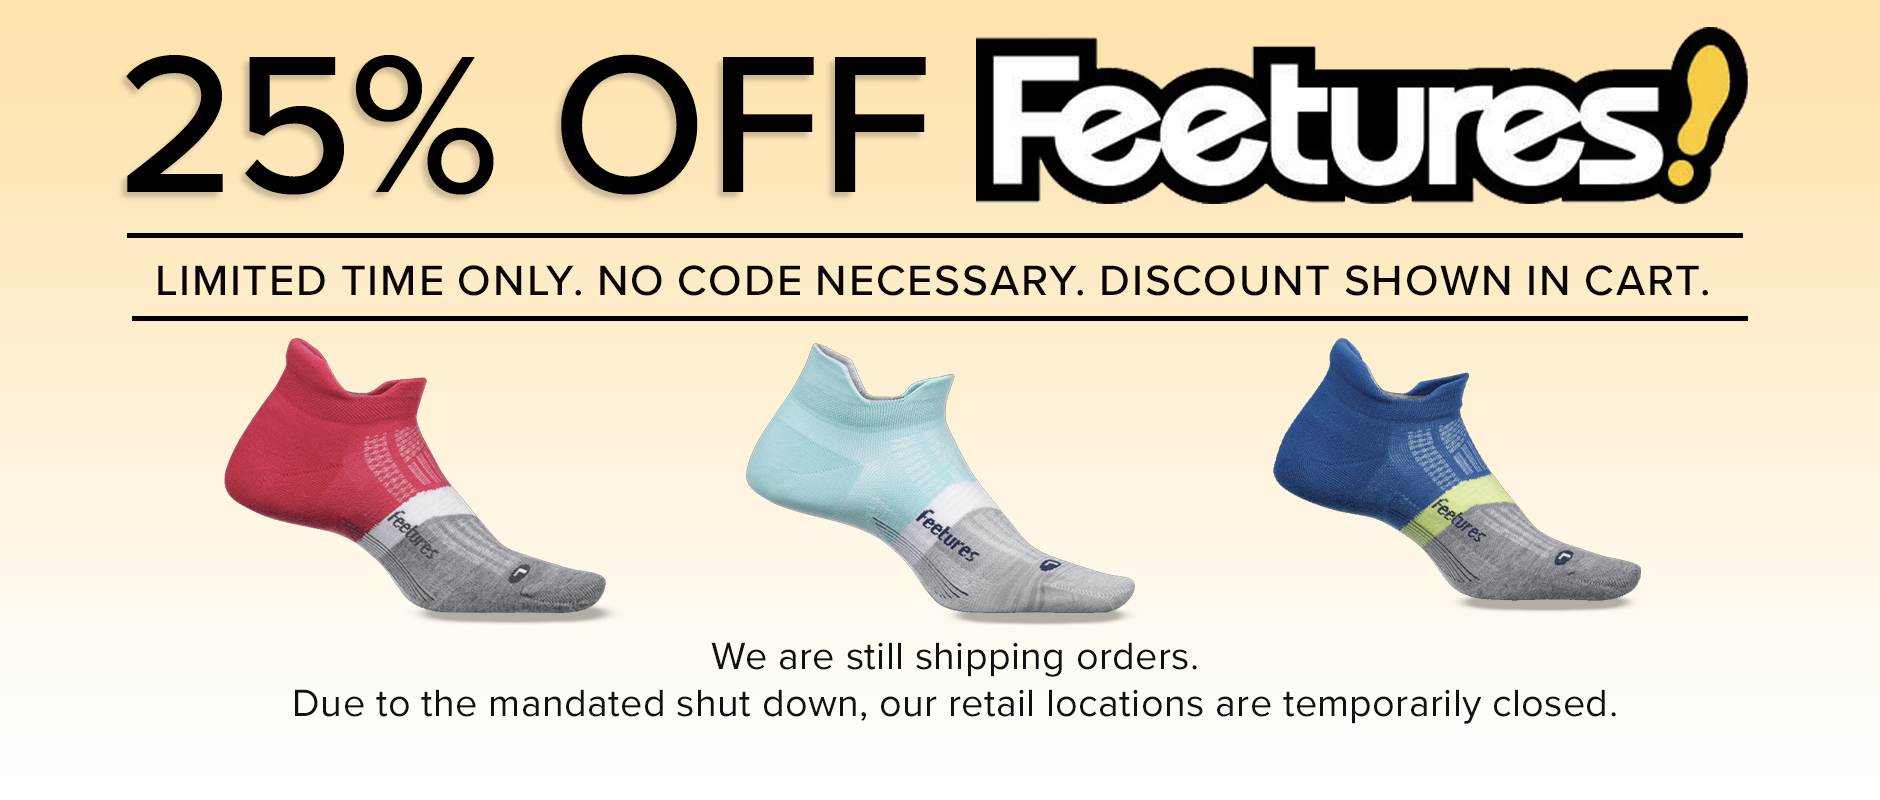 Feetures 25% off Sale